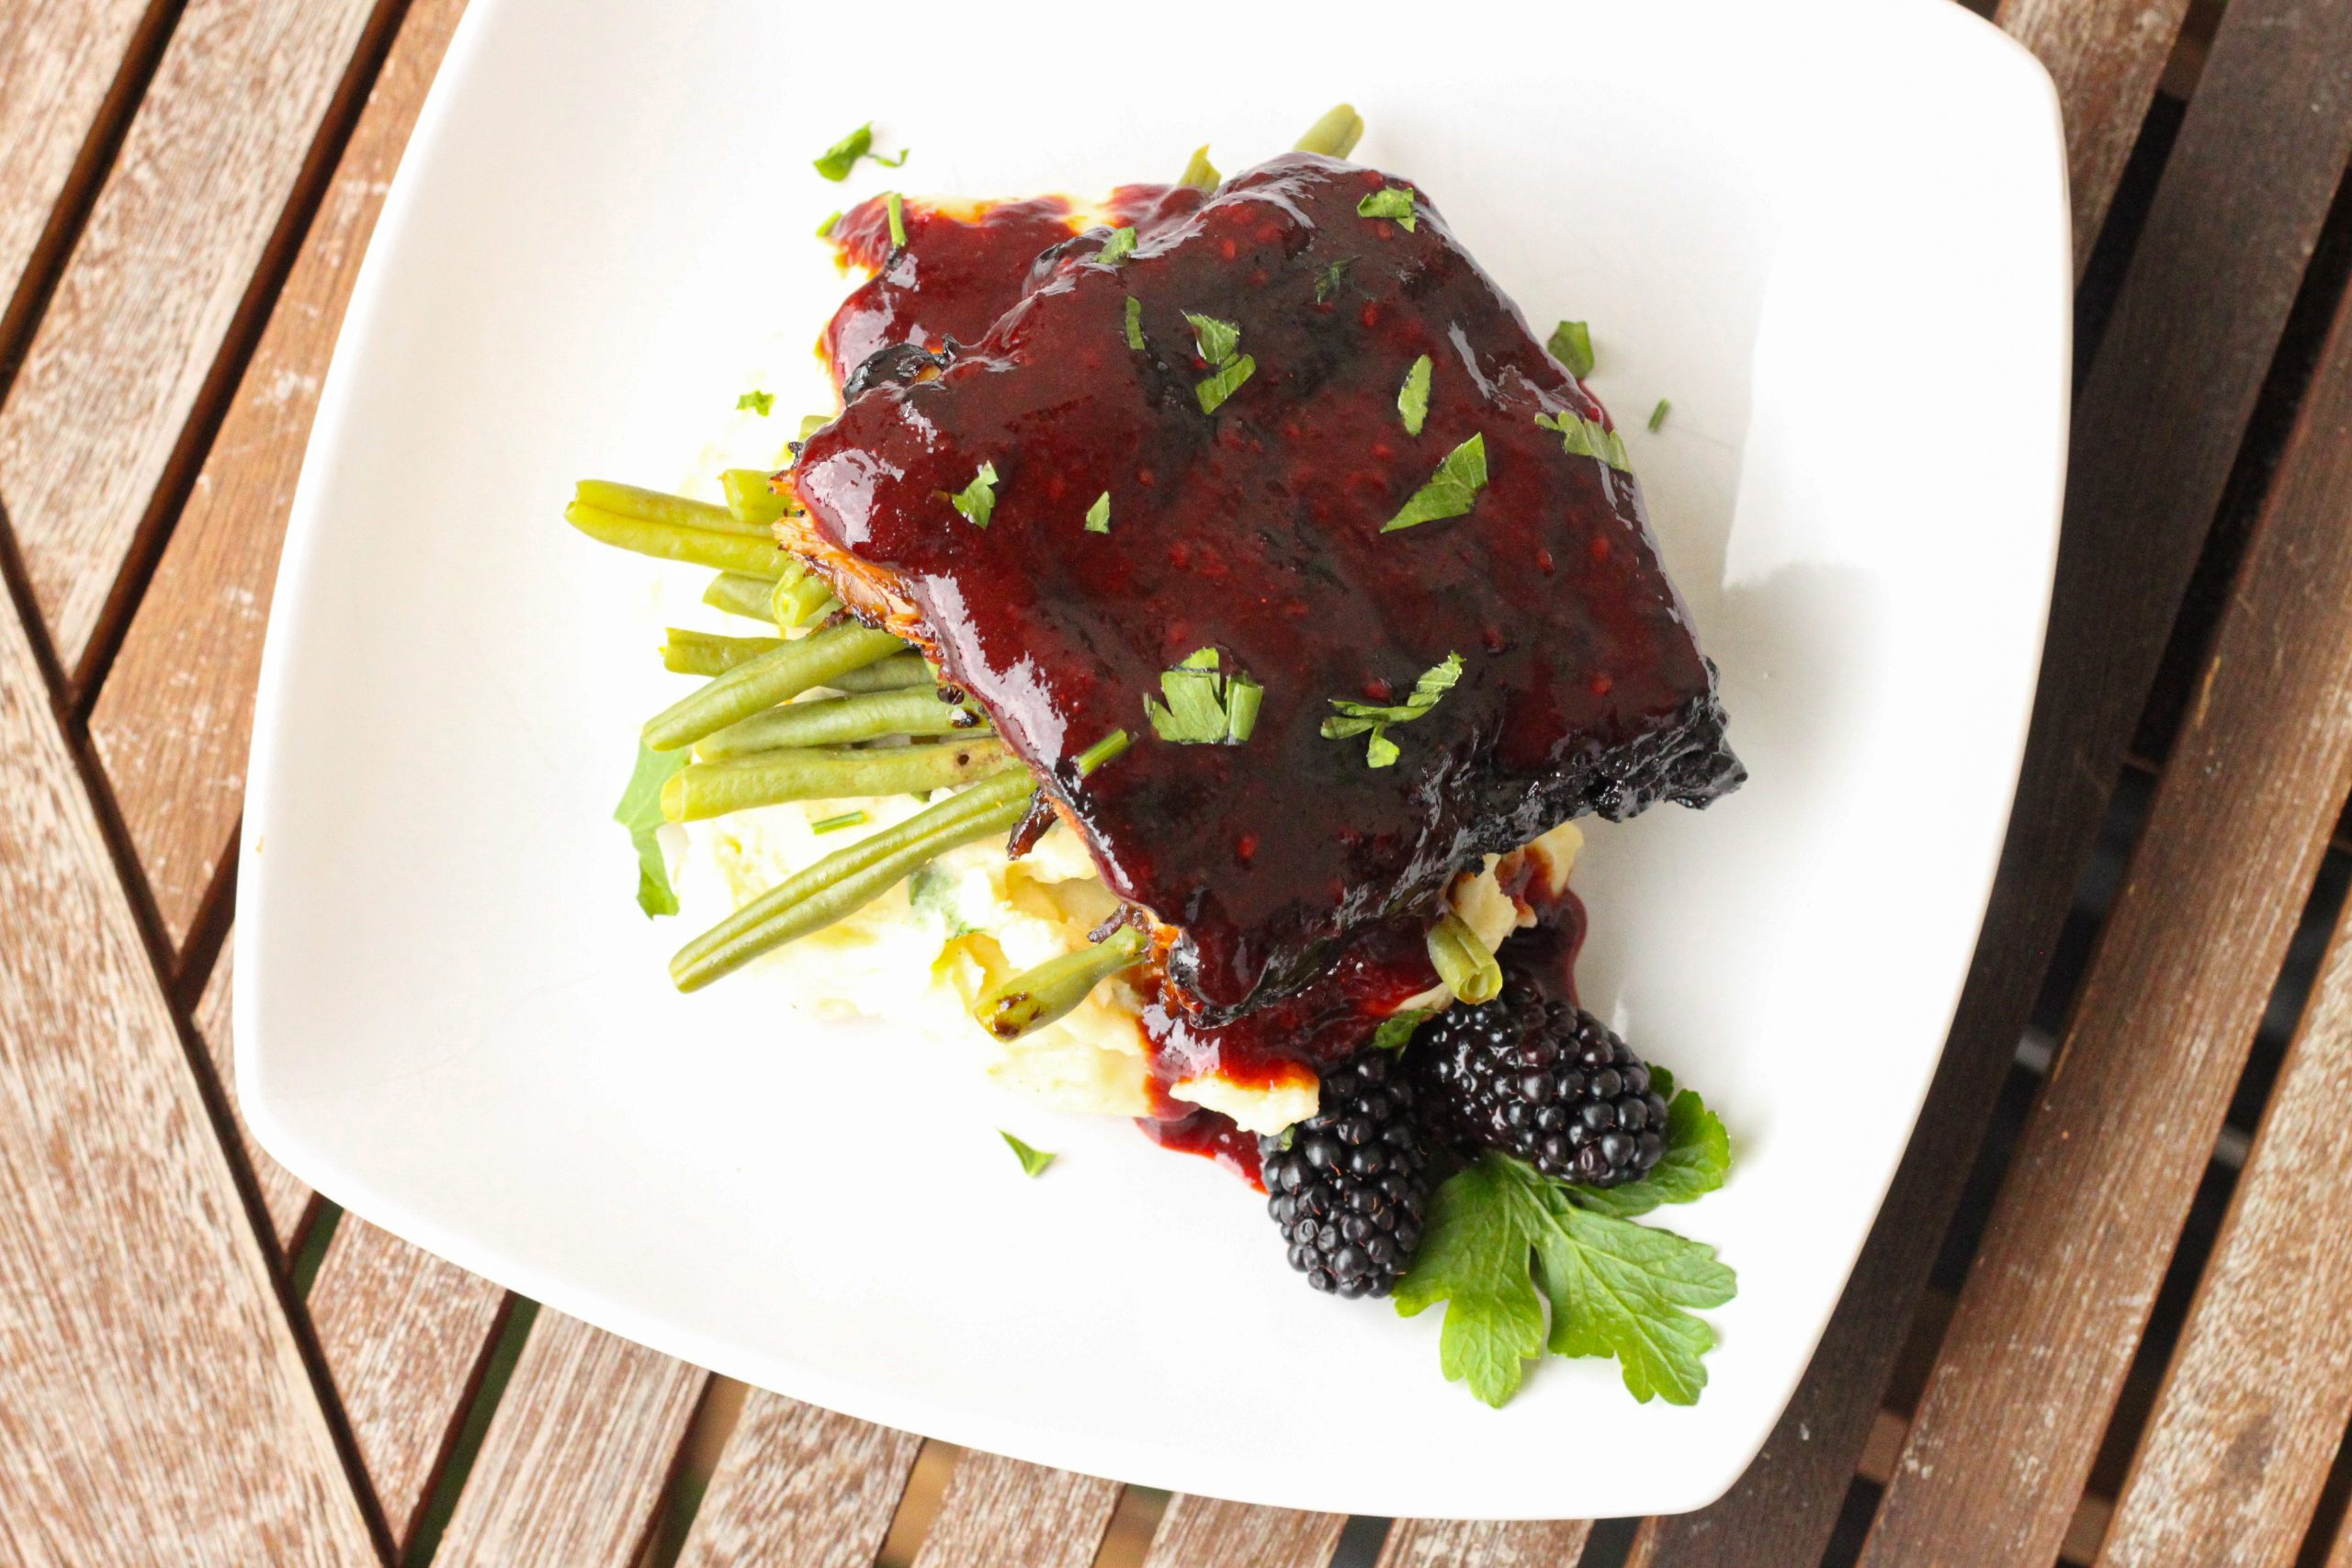 Blackberry Hoisin Ribs